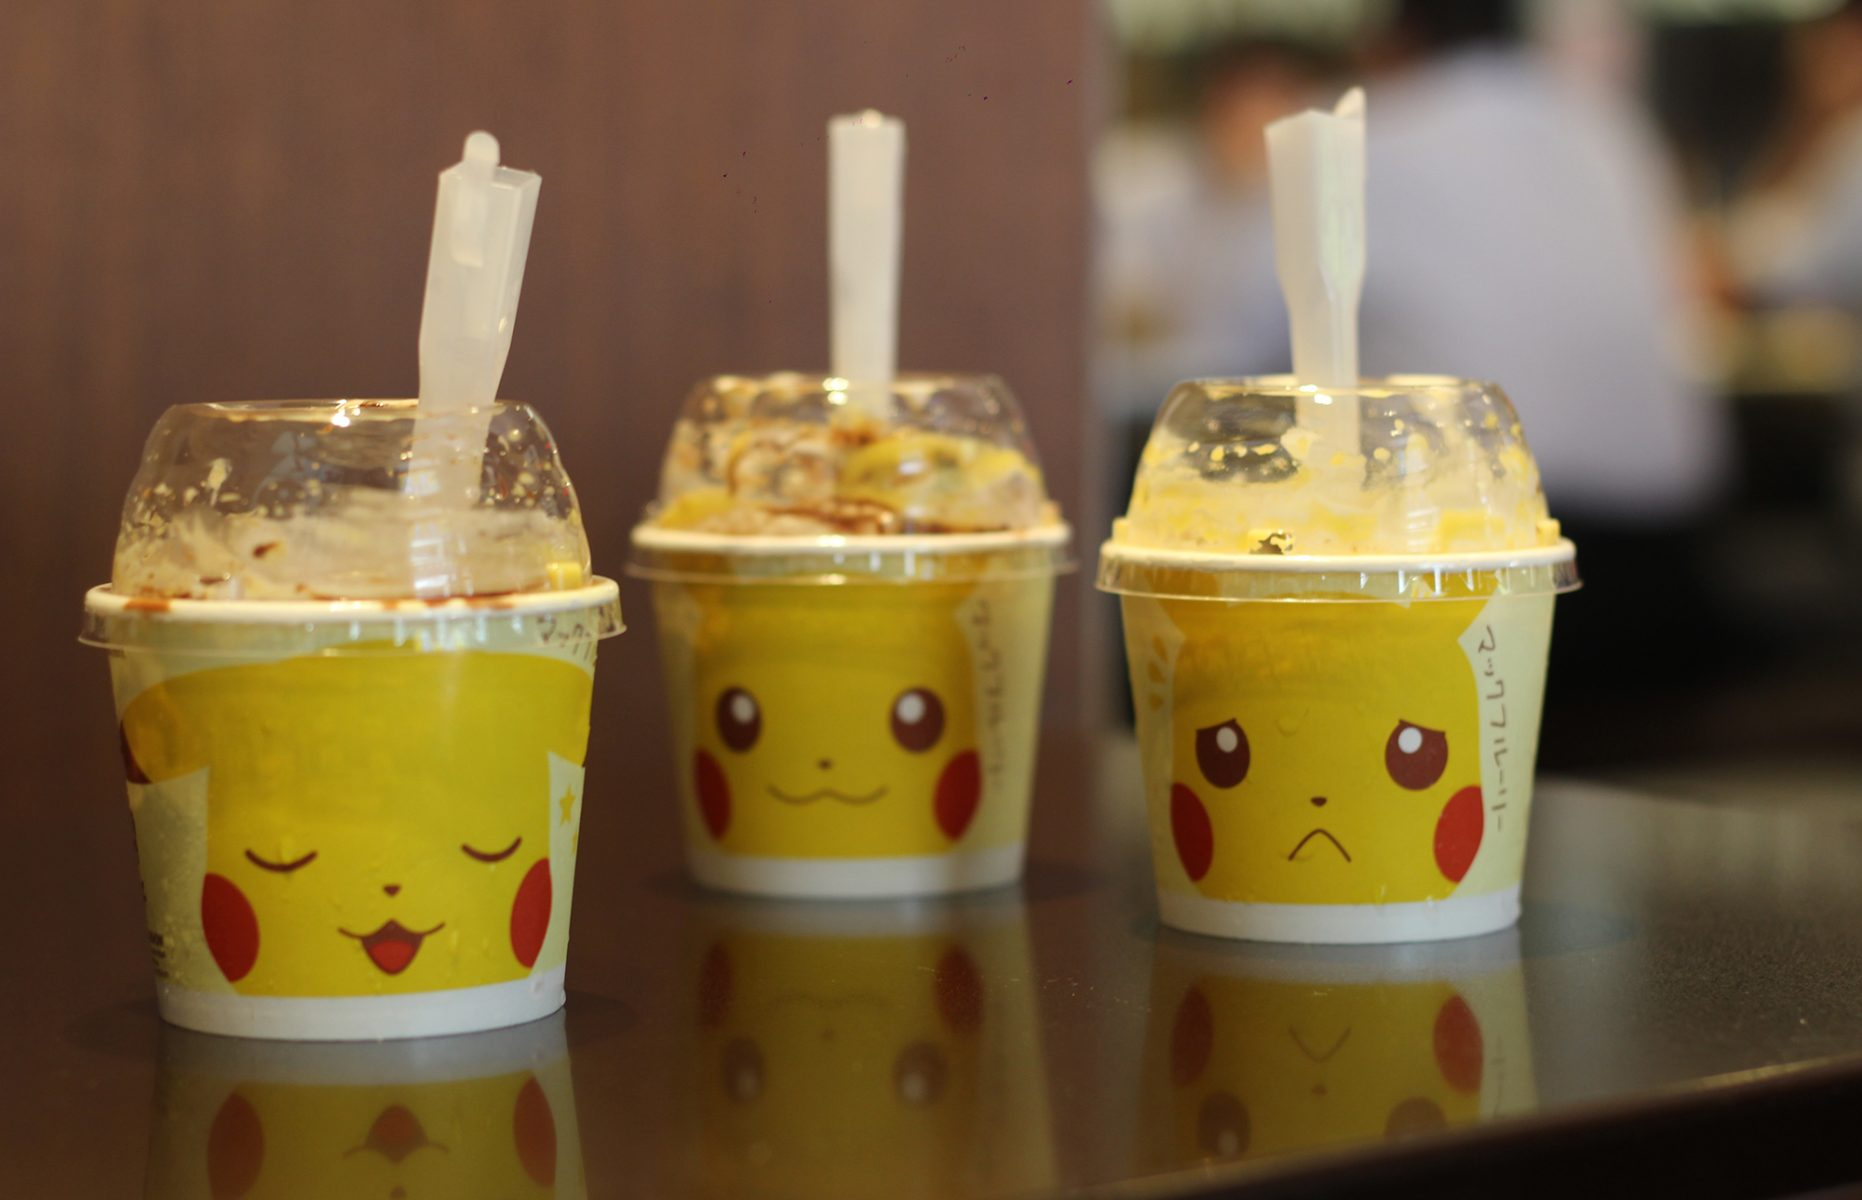 IMG_8129-1862x1200 Trying the Pikachu McFlurry in Japan